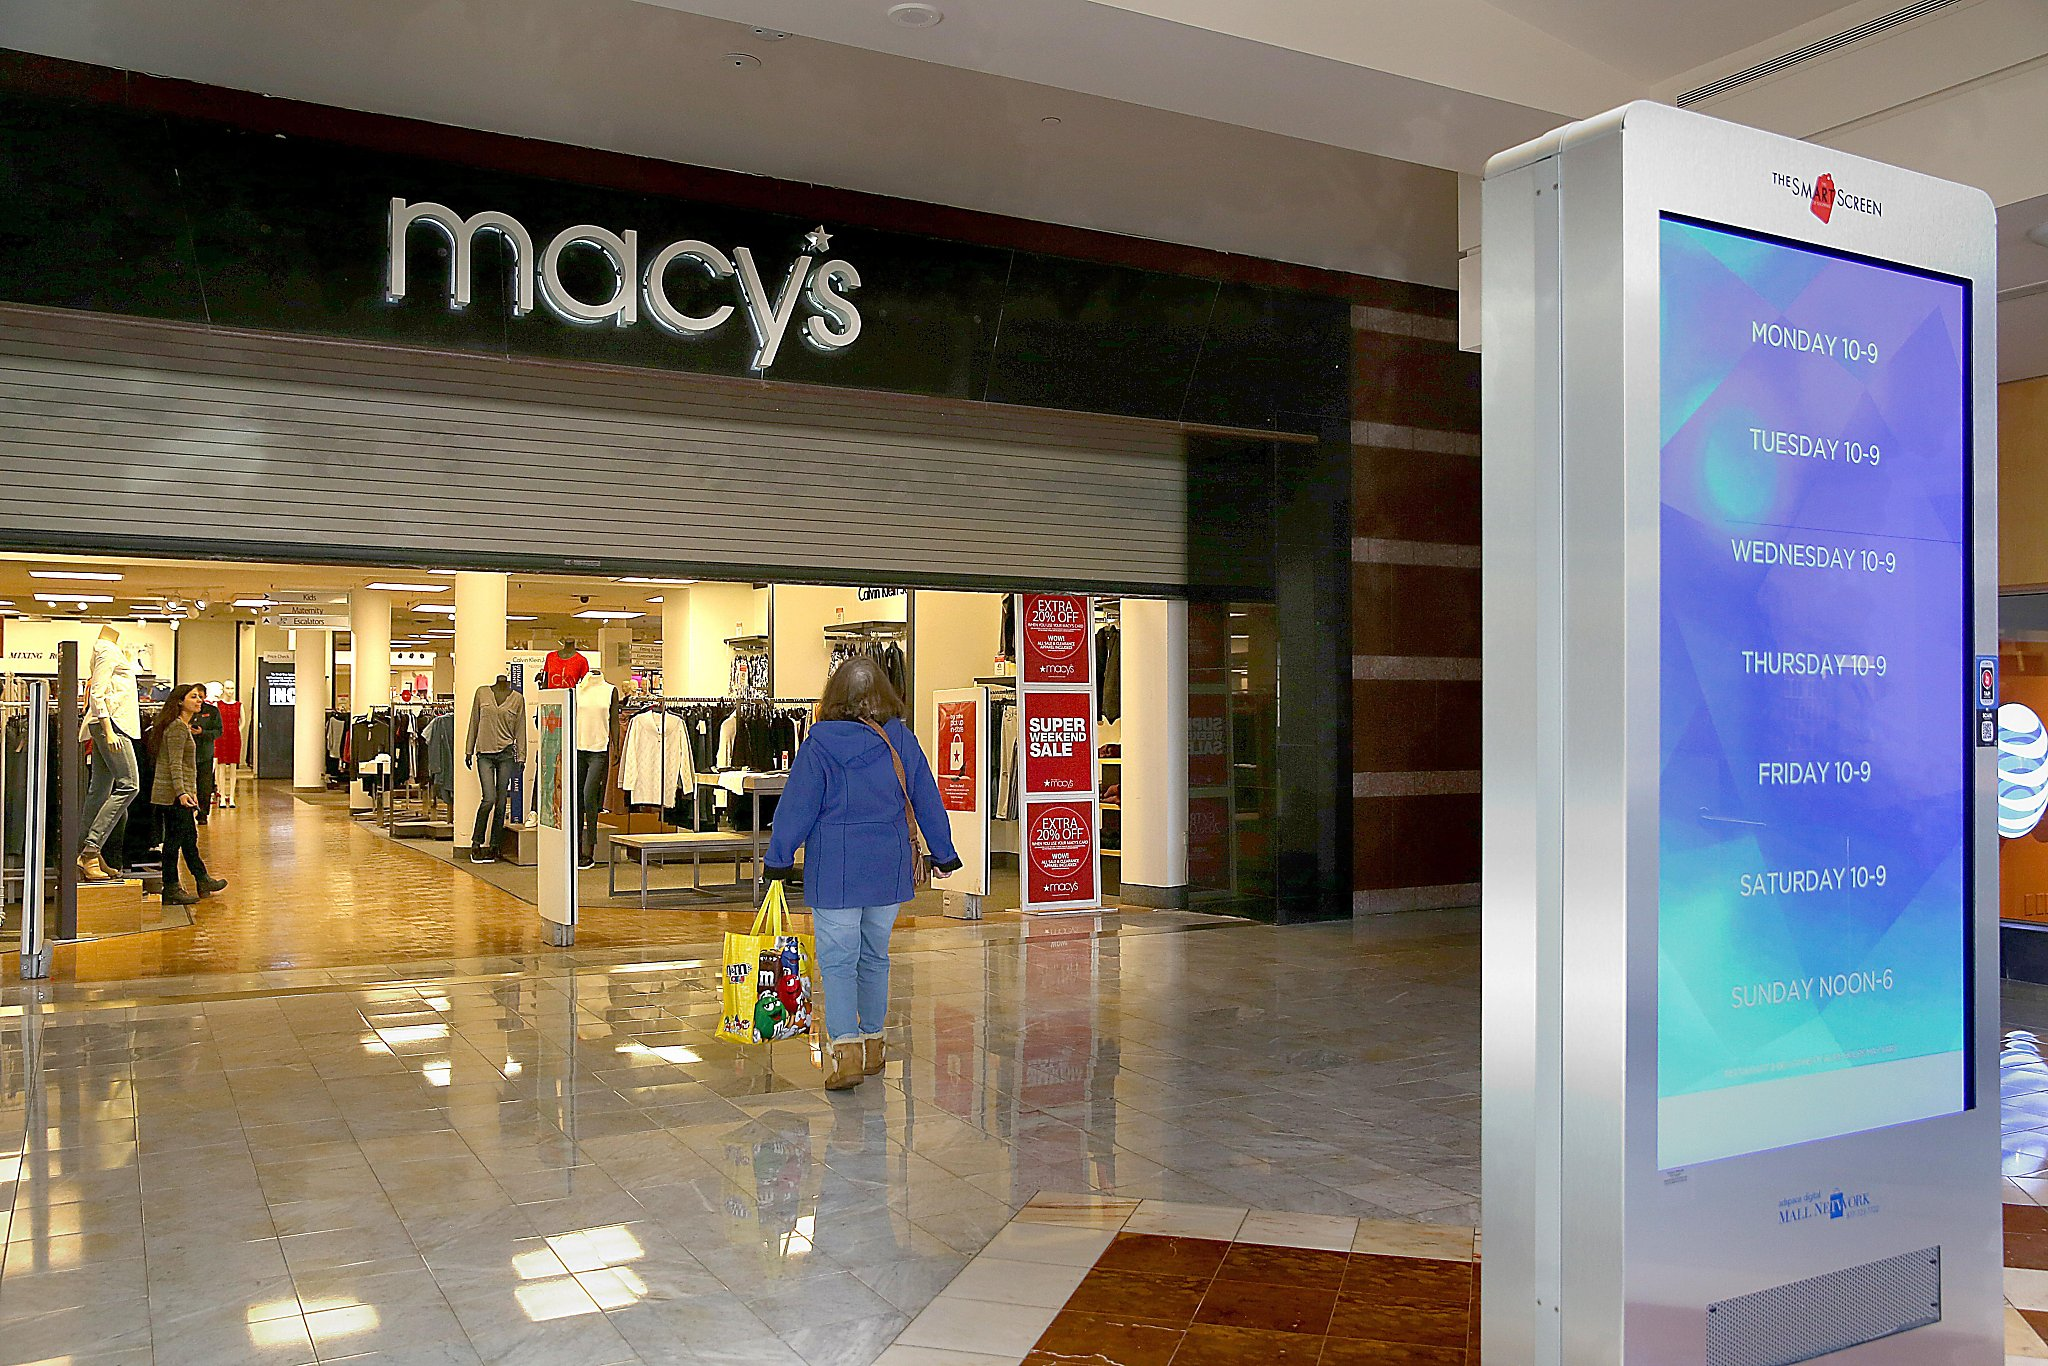 d1b299fd102 Owner files to replace Stonestown Macy's with restaurants, theater ...